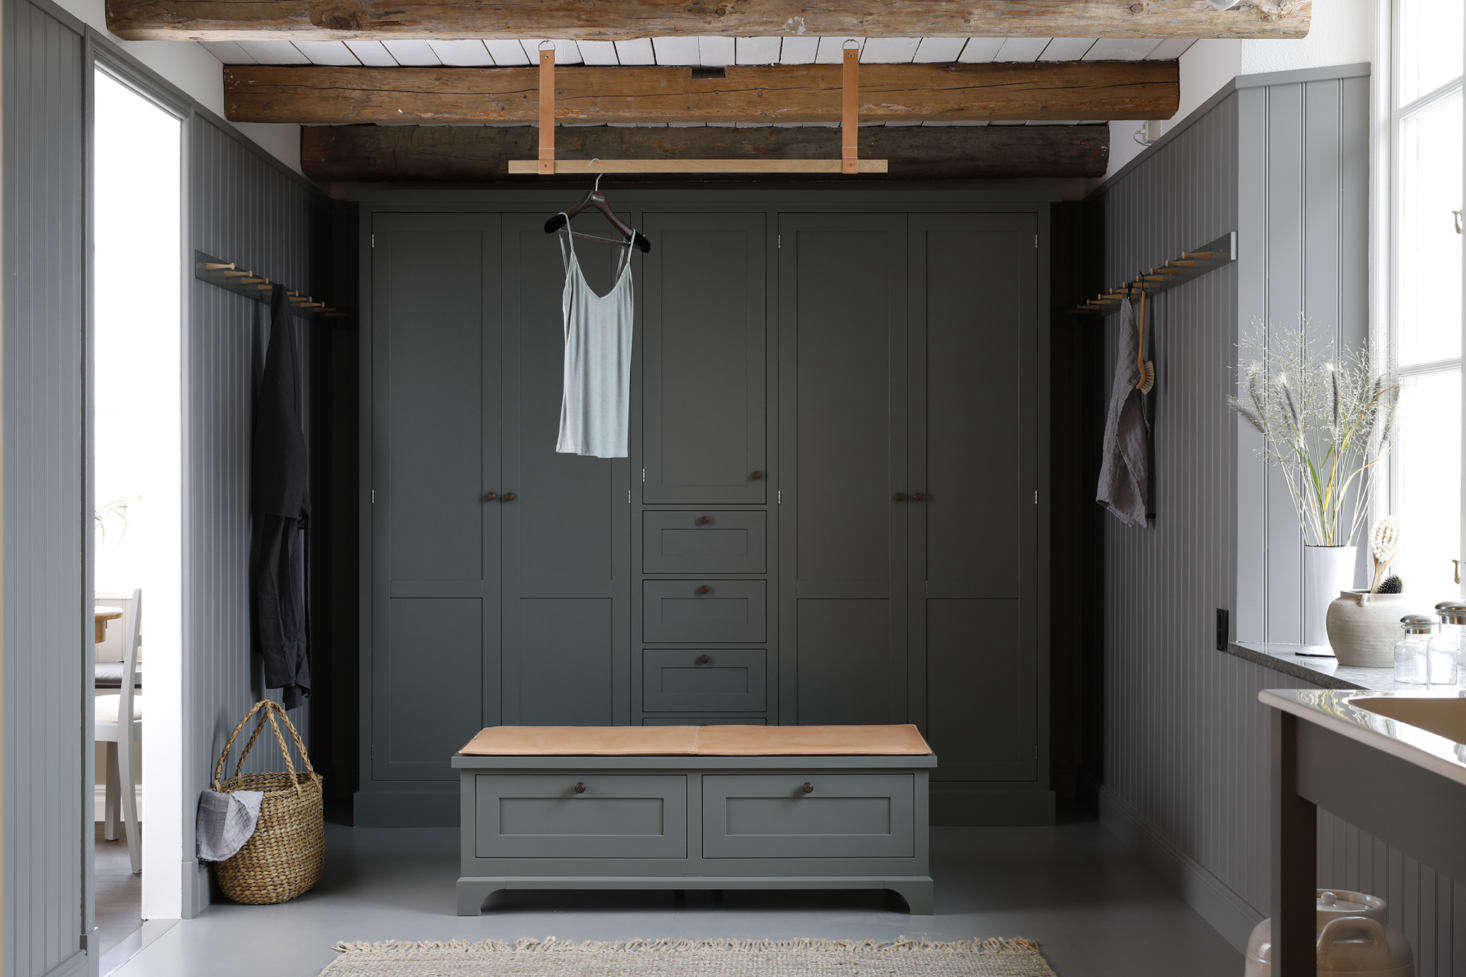 A leather-cushioned bench overlooks a bank of built-in closets and drawers for two. The leather-and-wood hanging bar is another Kvänum detail: the company, which dates to , specializes in custom kitchens and closets created from elements in its catalogue: this is the Modern Classic Dressing Room in Ekeby Forest Green, an in-house paint color.